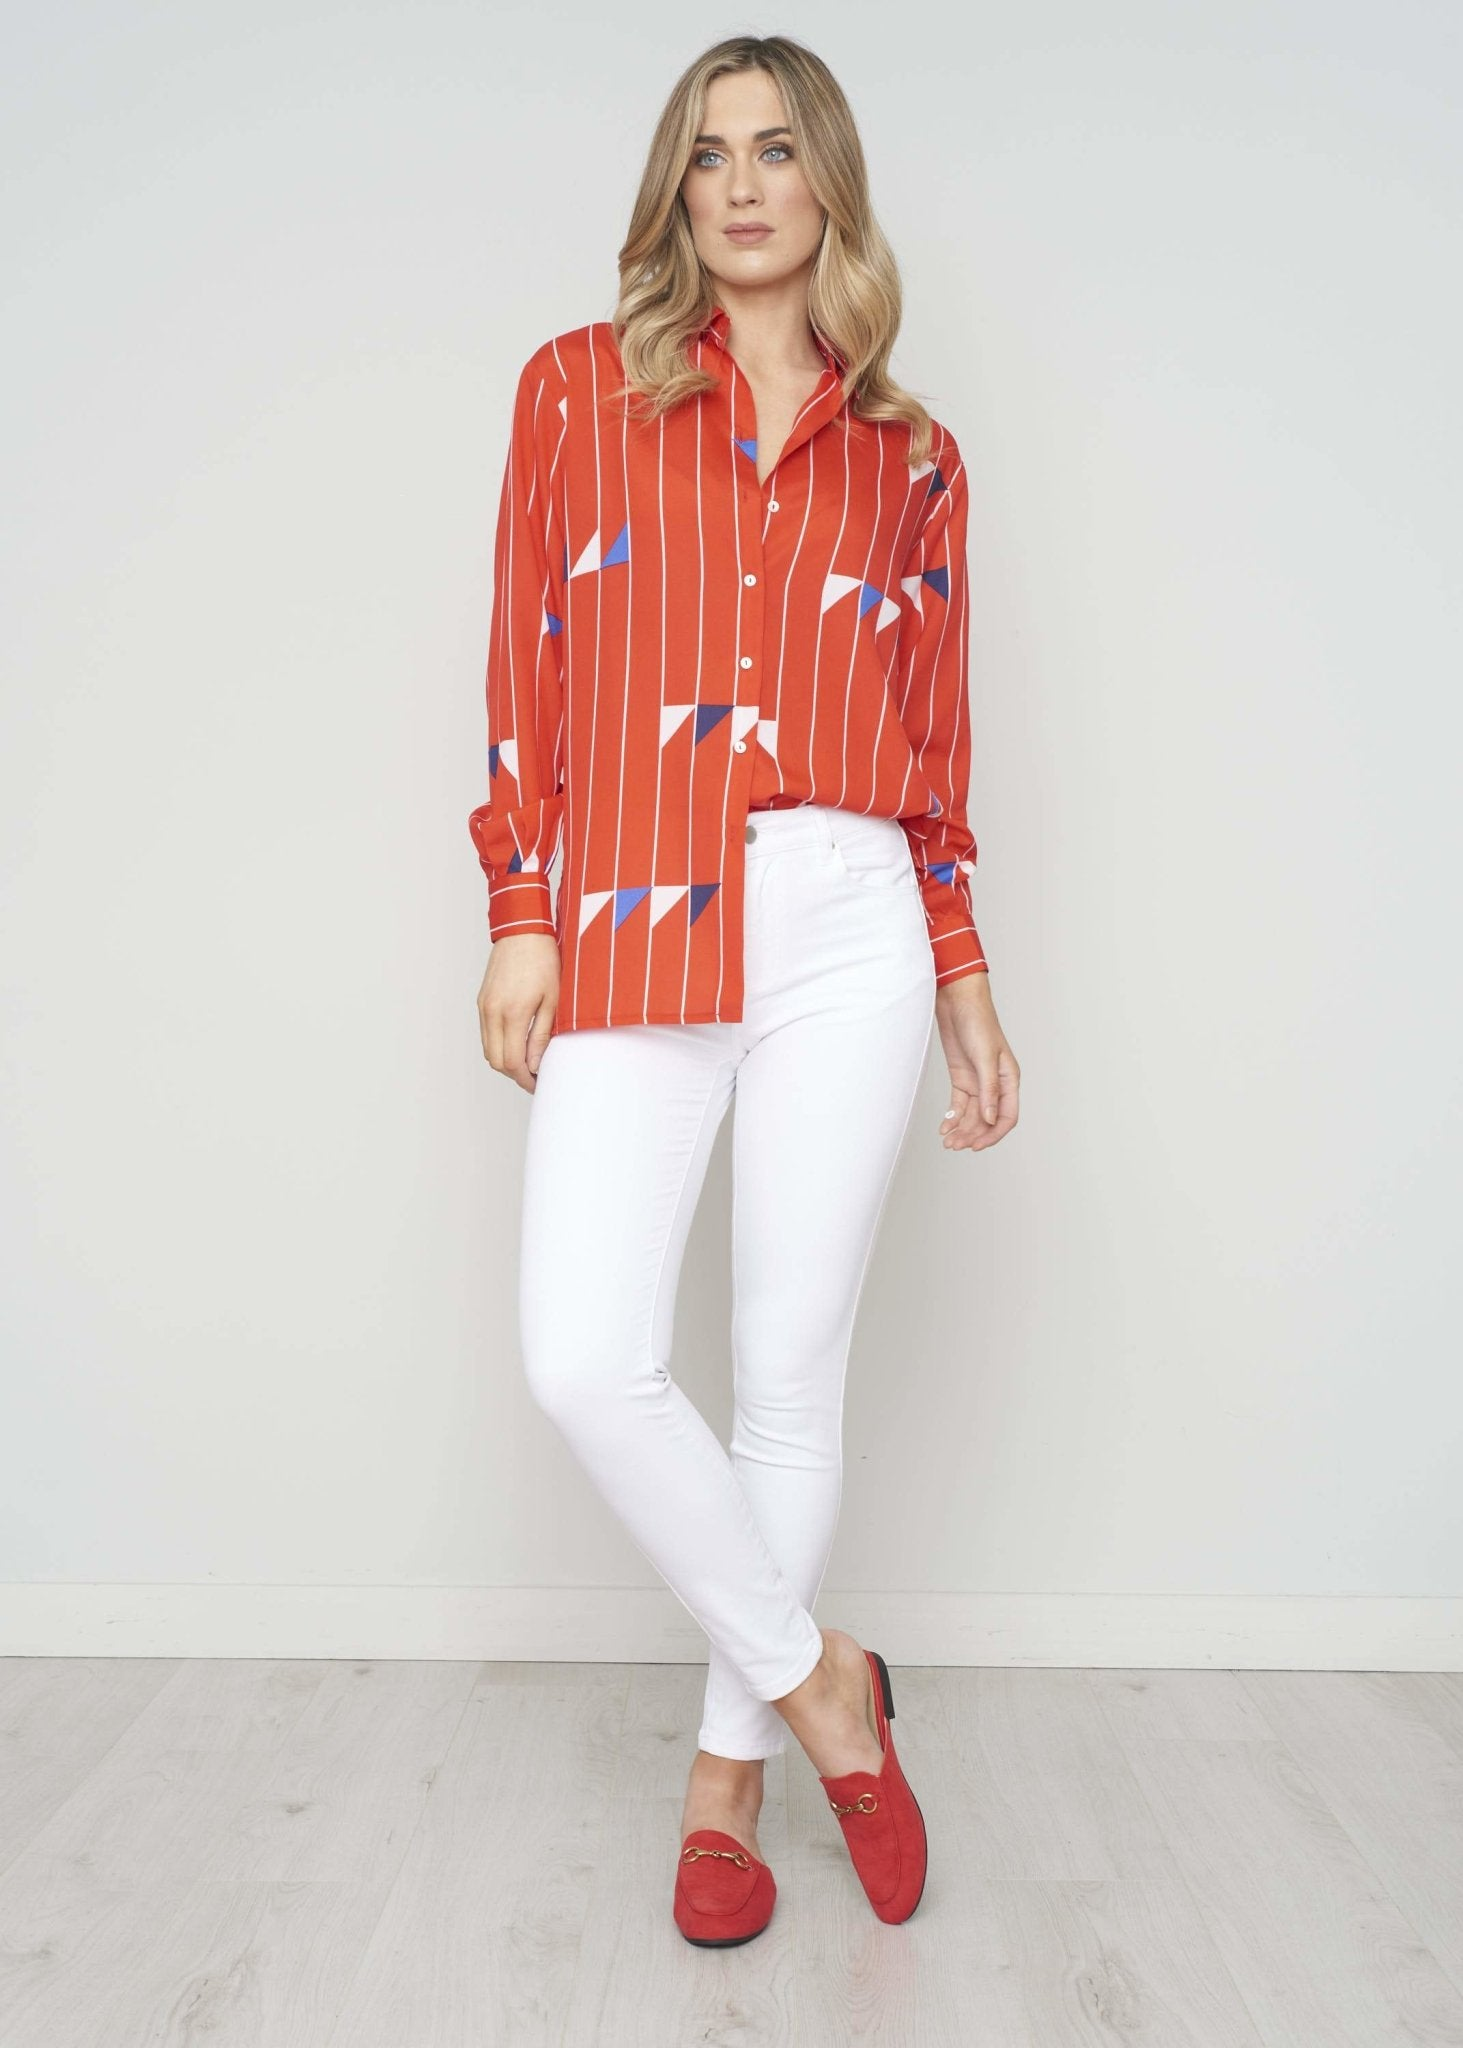 Becca Printed Shirt In Red - The Walk in Wardrobe